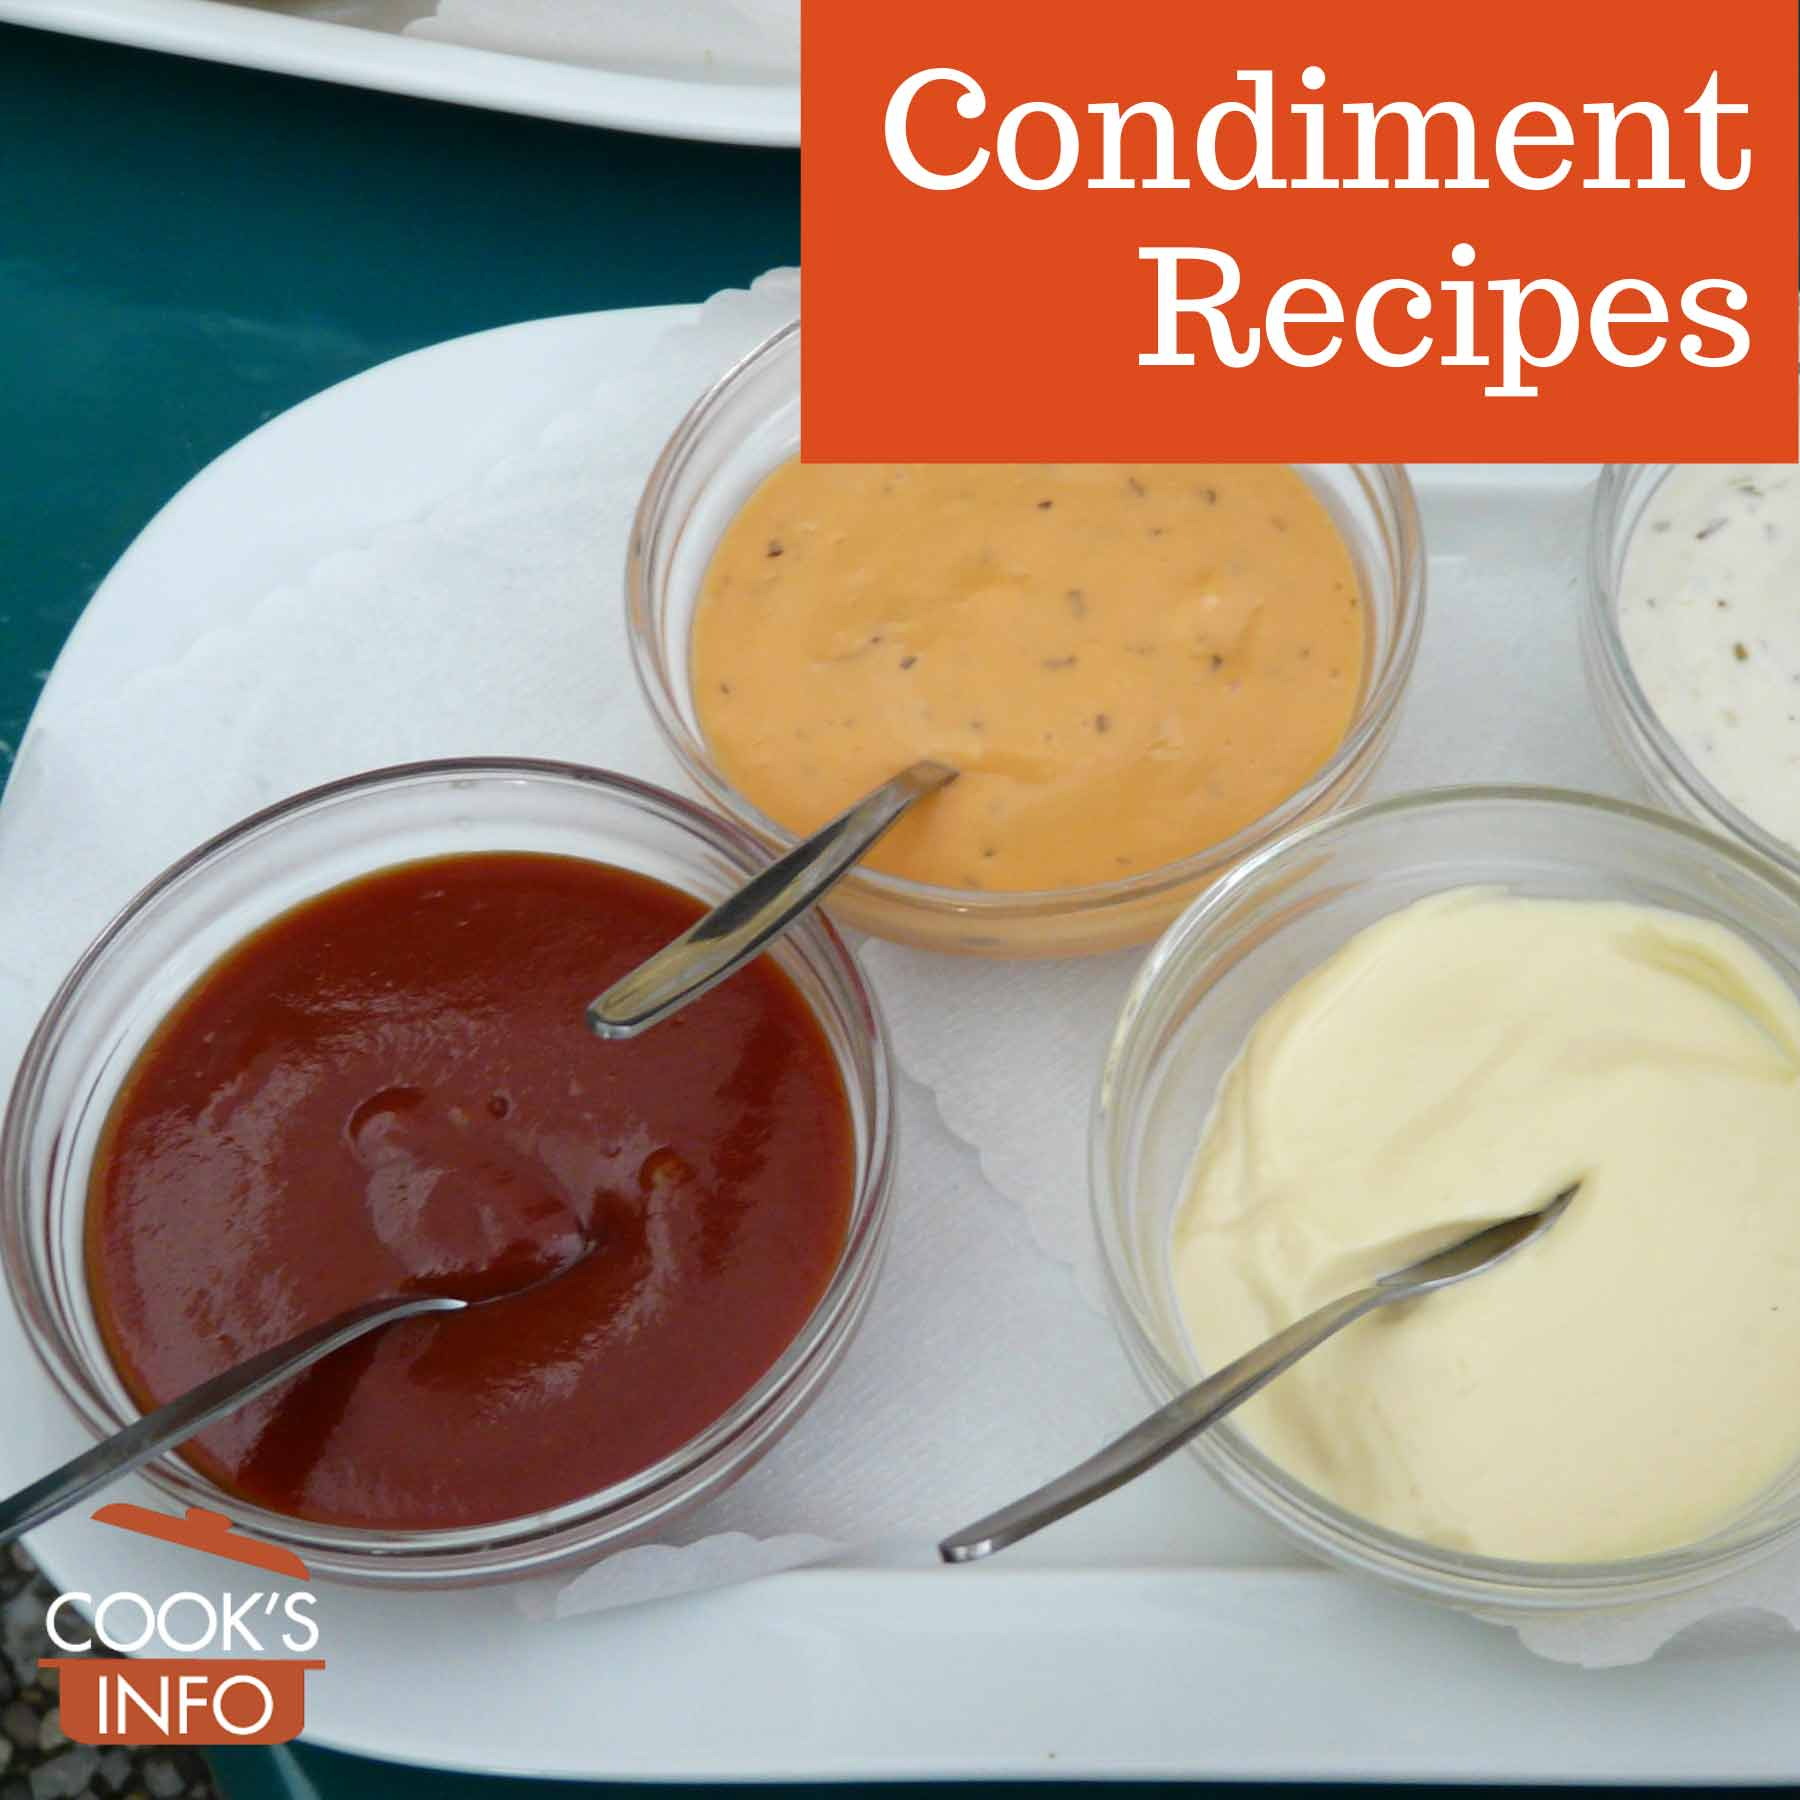 Condiments and dips